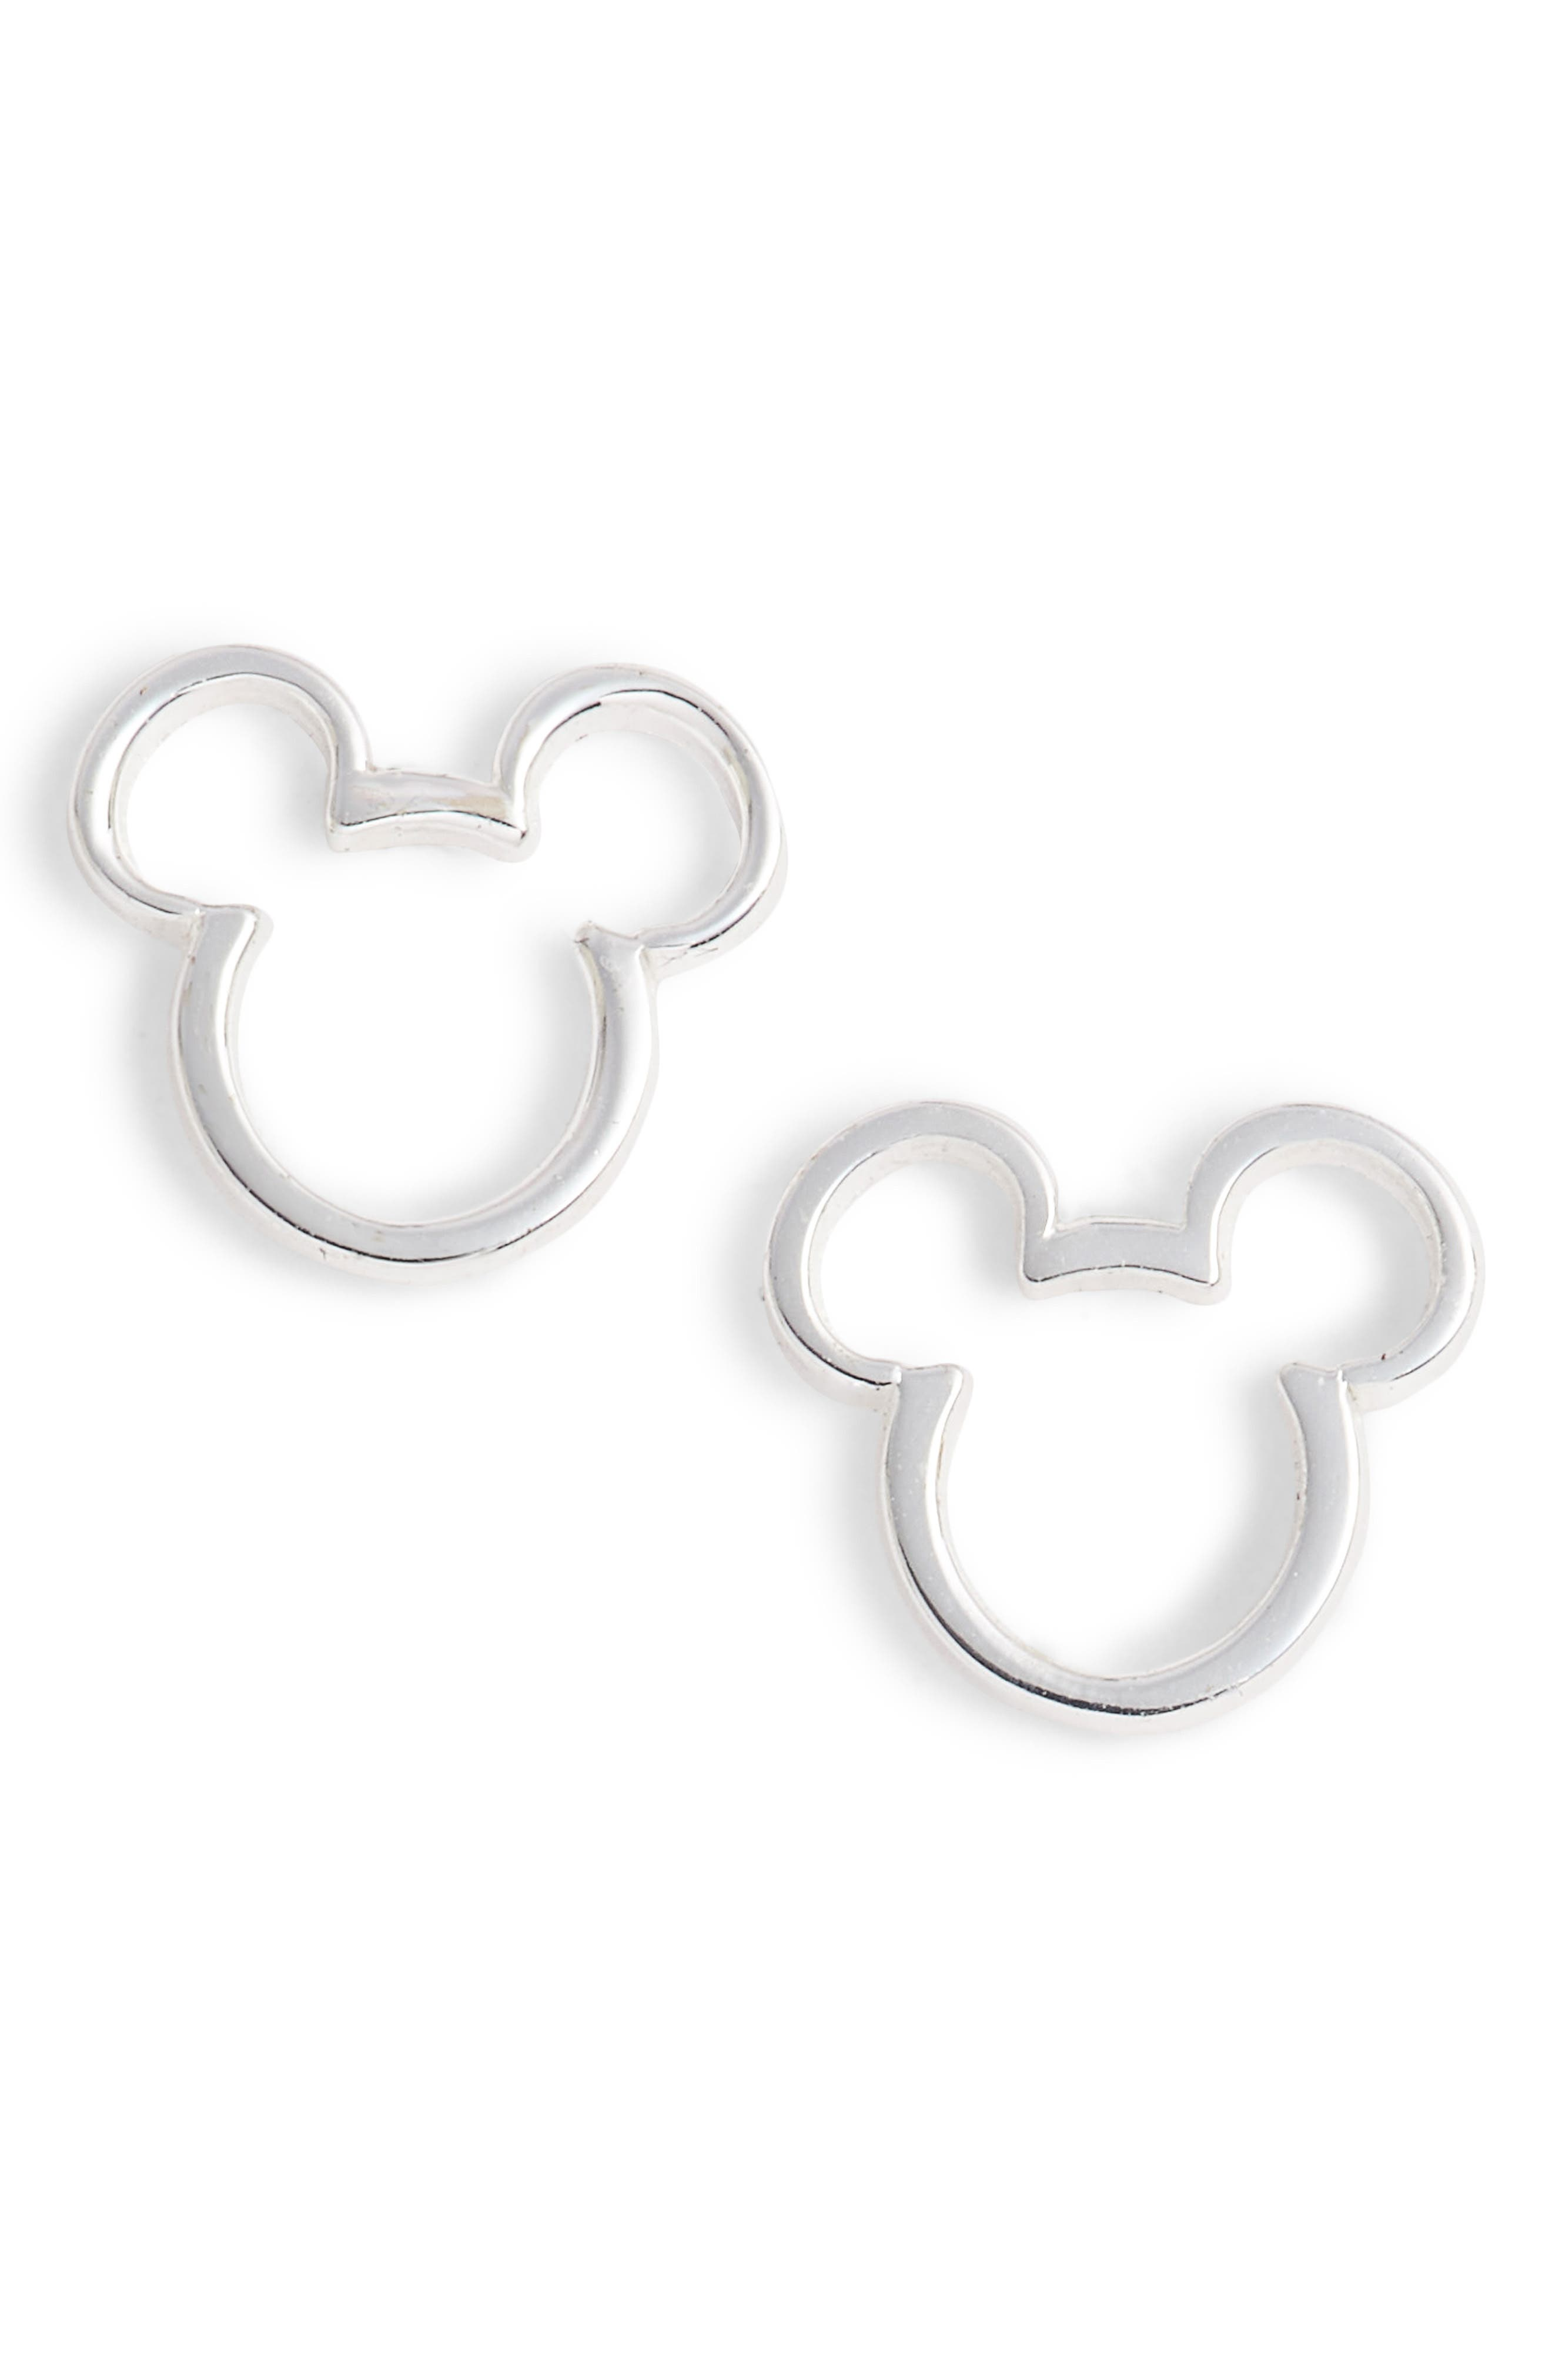 Mickey Mouse Stud Earrings,                         Main,                         color, Silver